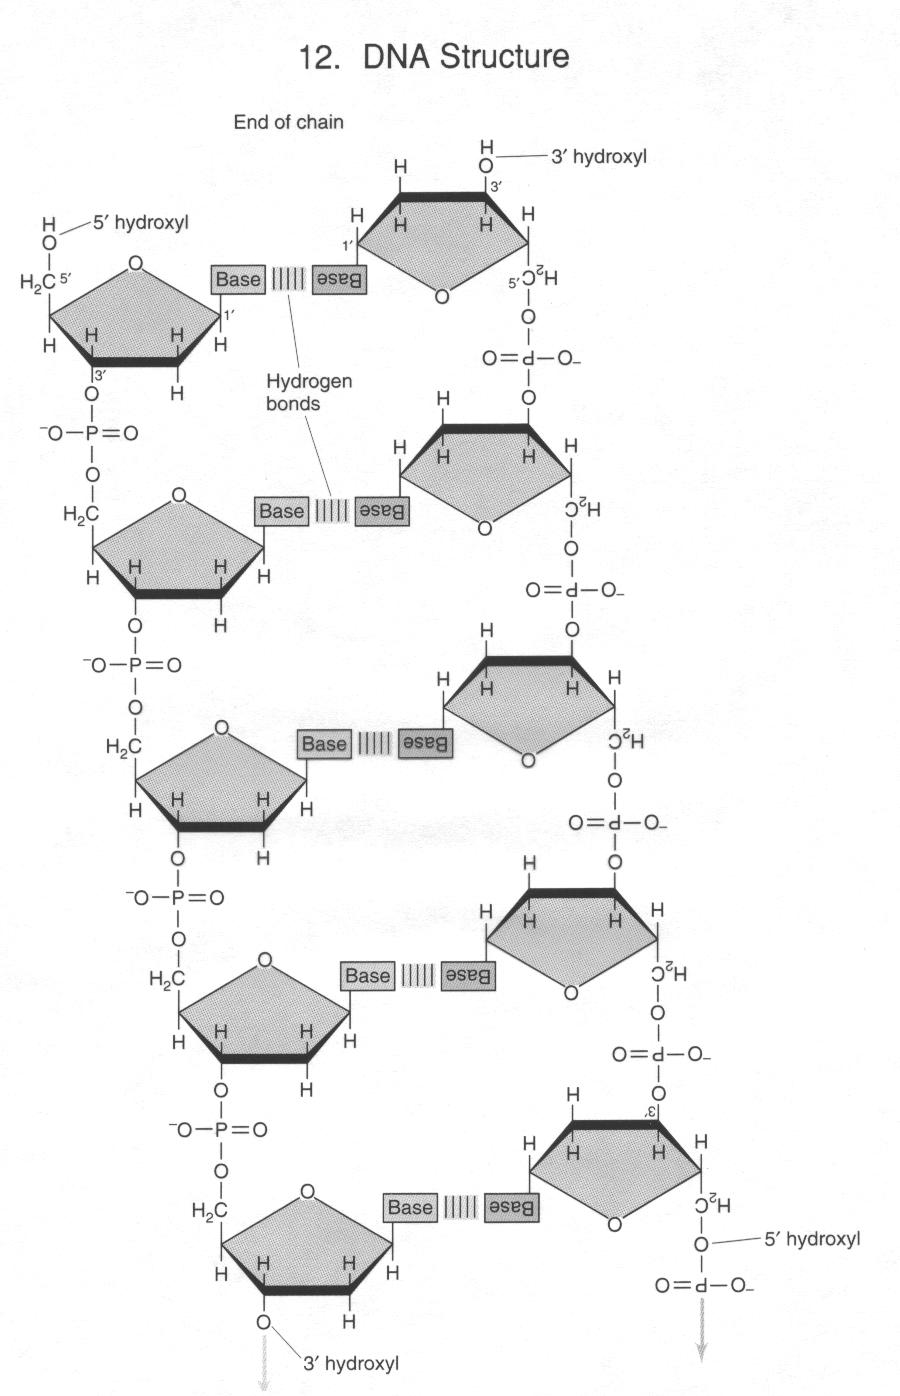 medium resolution of oligonucleotides 1 oligonucleotide growth occurs in the 5 to 3 direction via an attack by 3 hydroxyl groups upon the 5 alpha phosphate of nucleotide